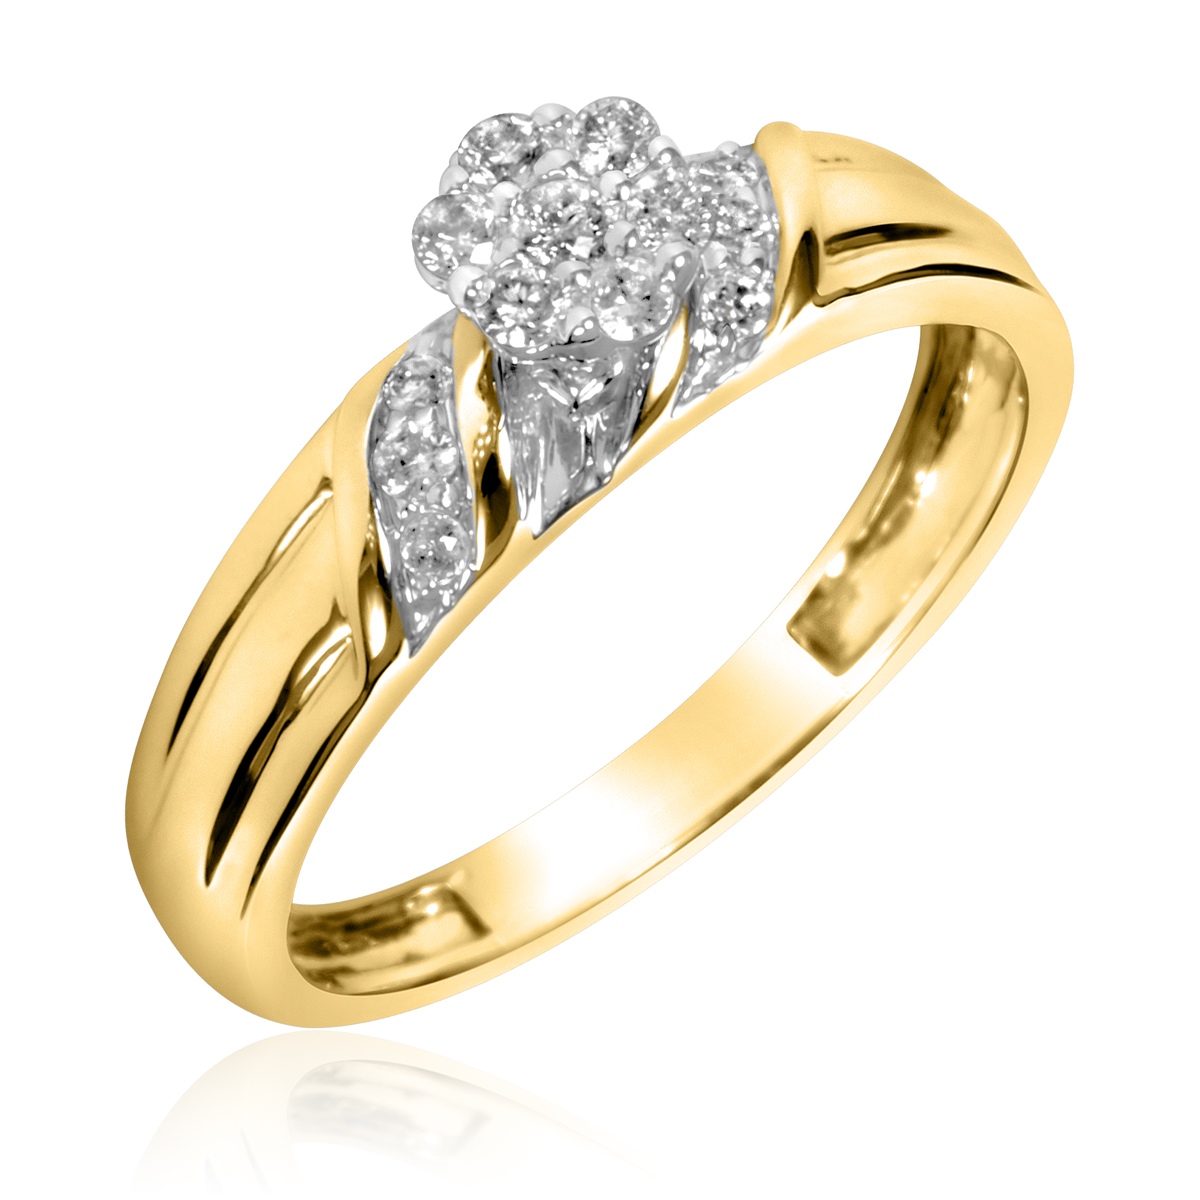 1/5 CT. T.W. Round Cut Diamond Ladies Engagement Ring 10K Yellow Gold- Size 8